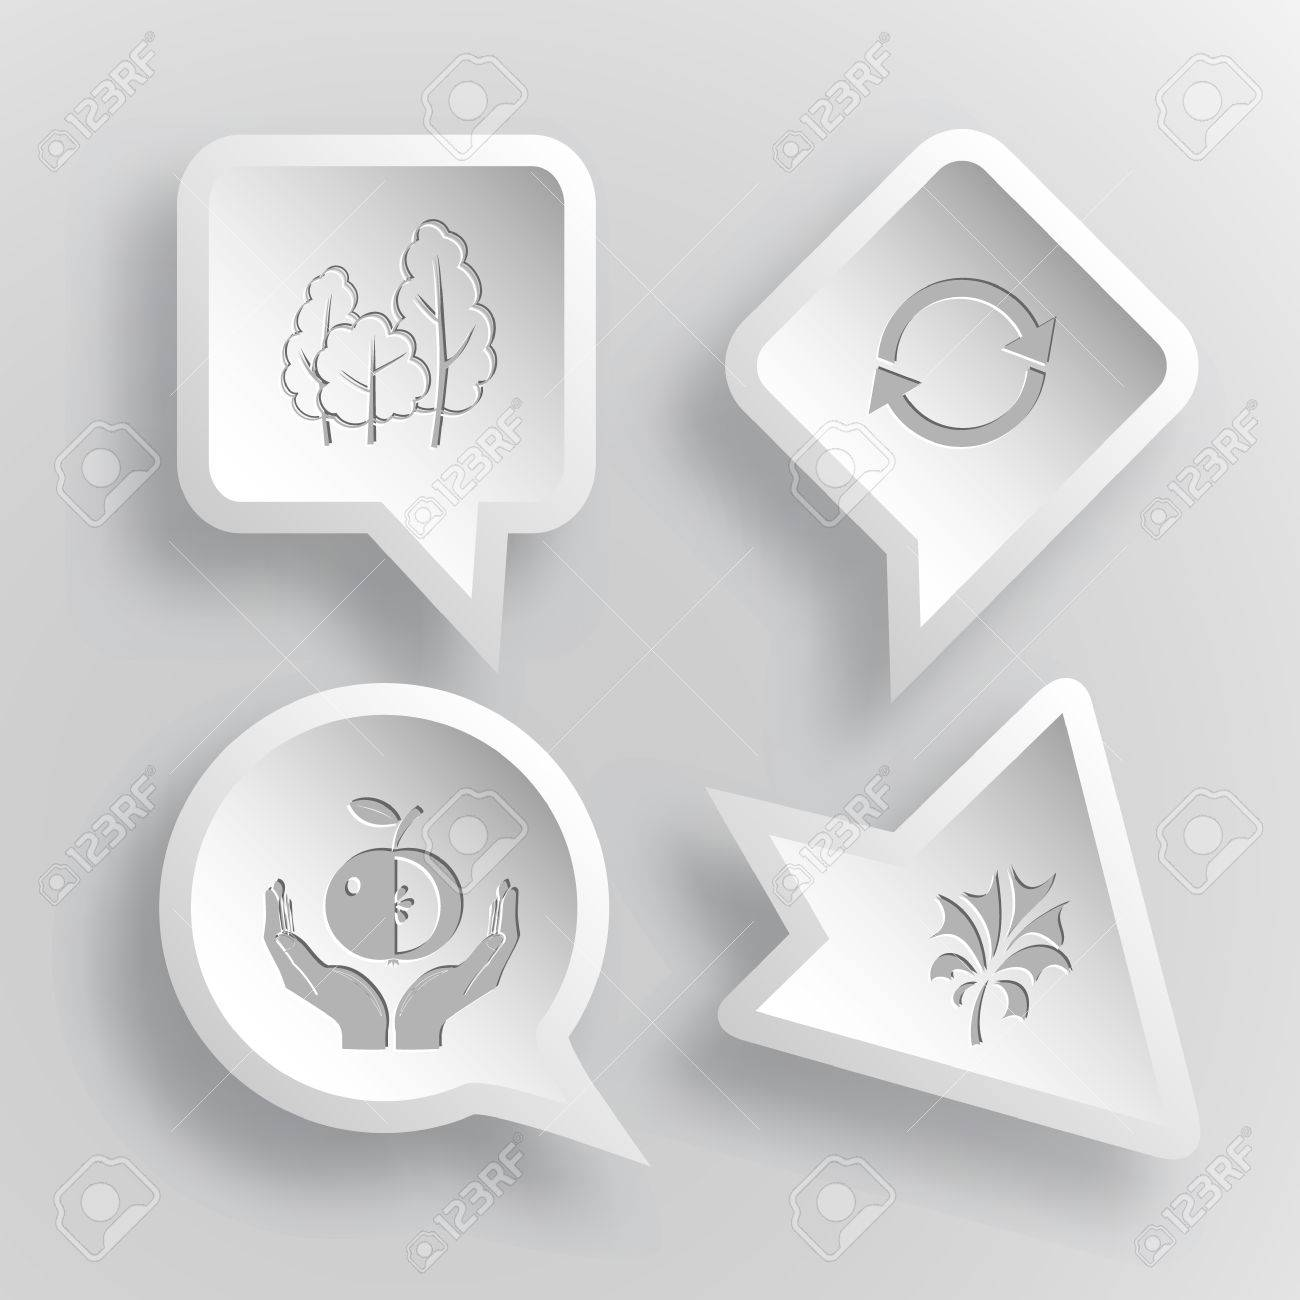 4 Images Trees Recycle Symbol Apple In Hands Plant Nature